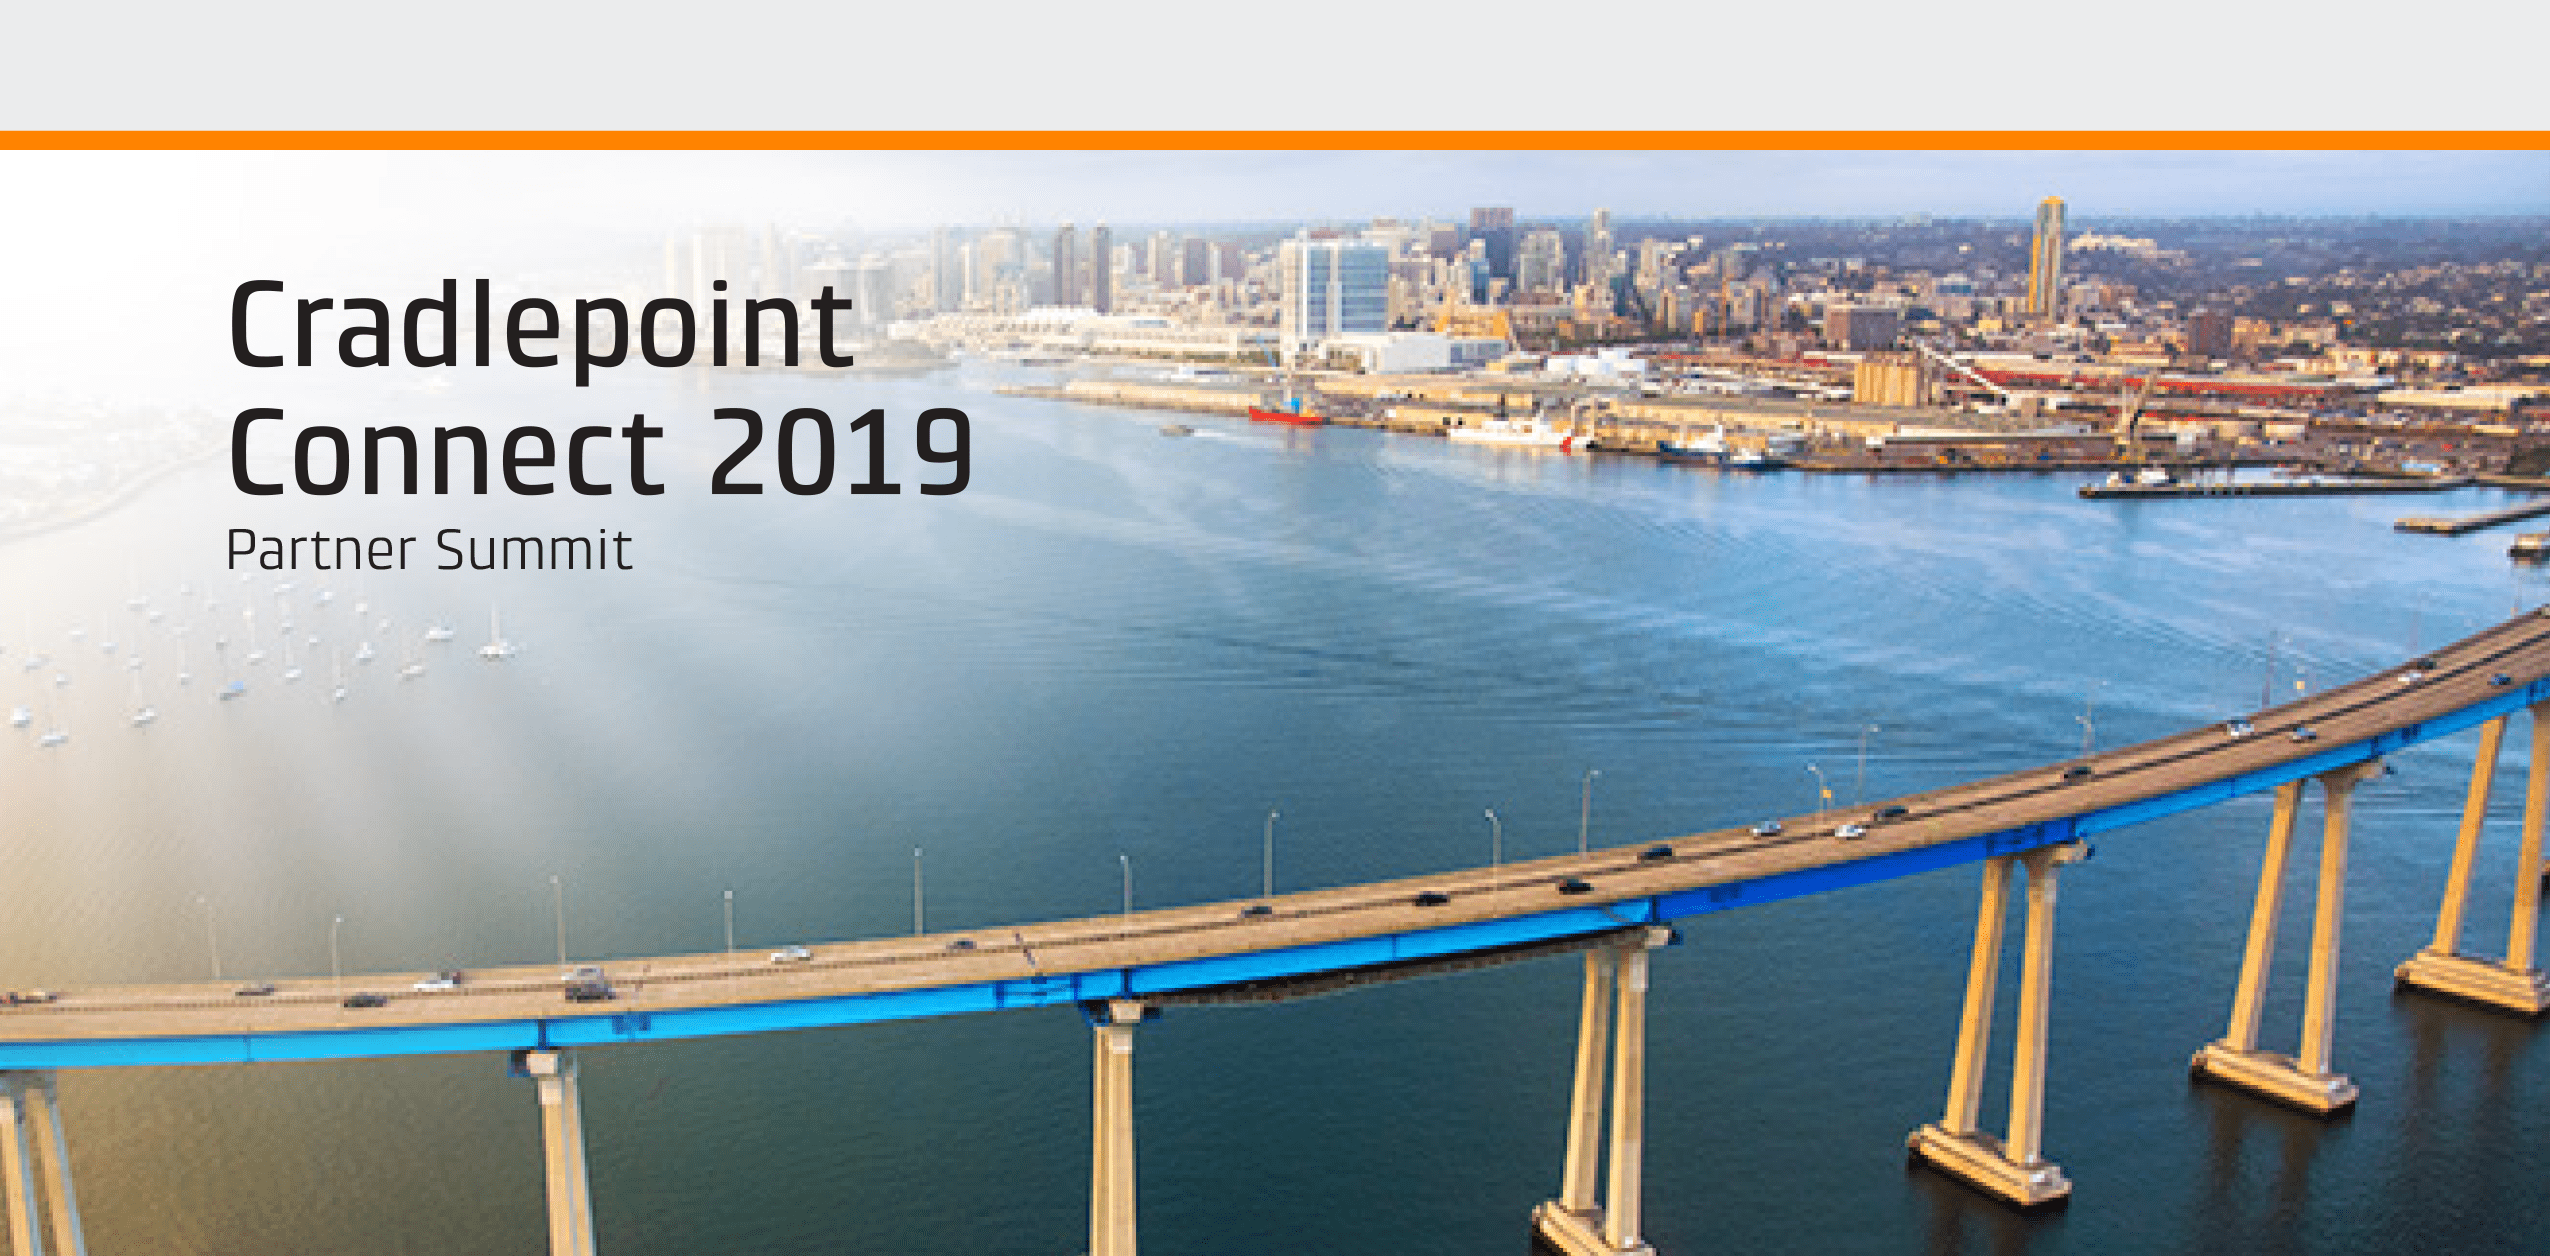 GoZone WiFi to Attend Cradlepoint Connect 2019 Partner Summit featured image